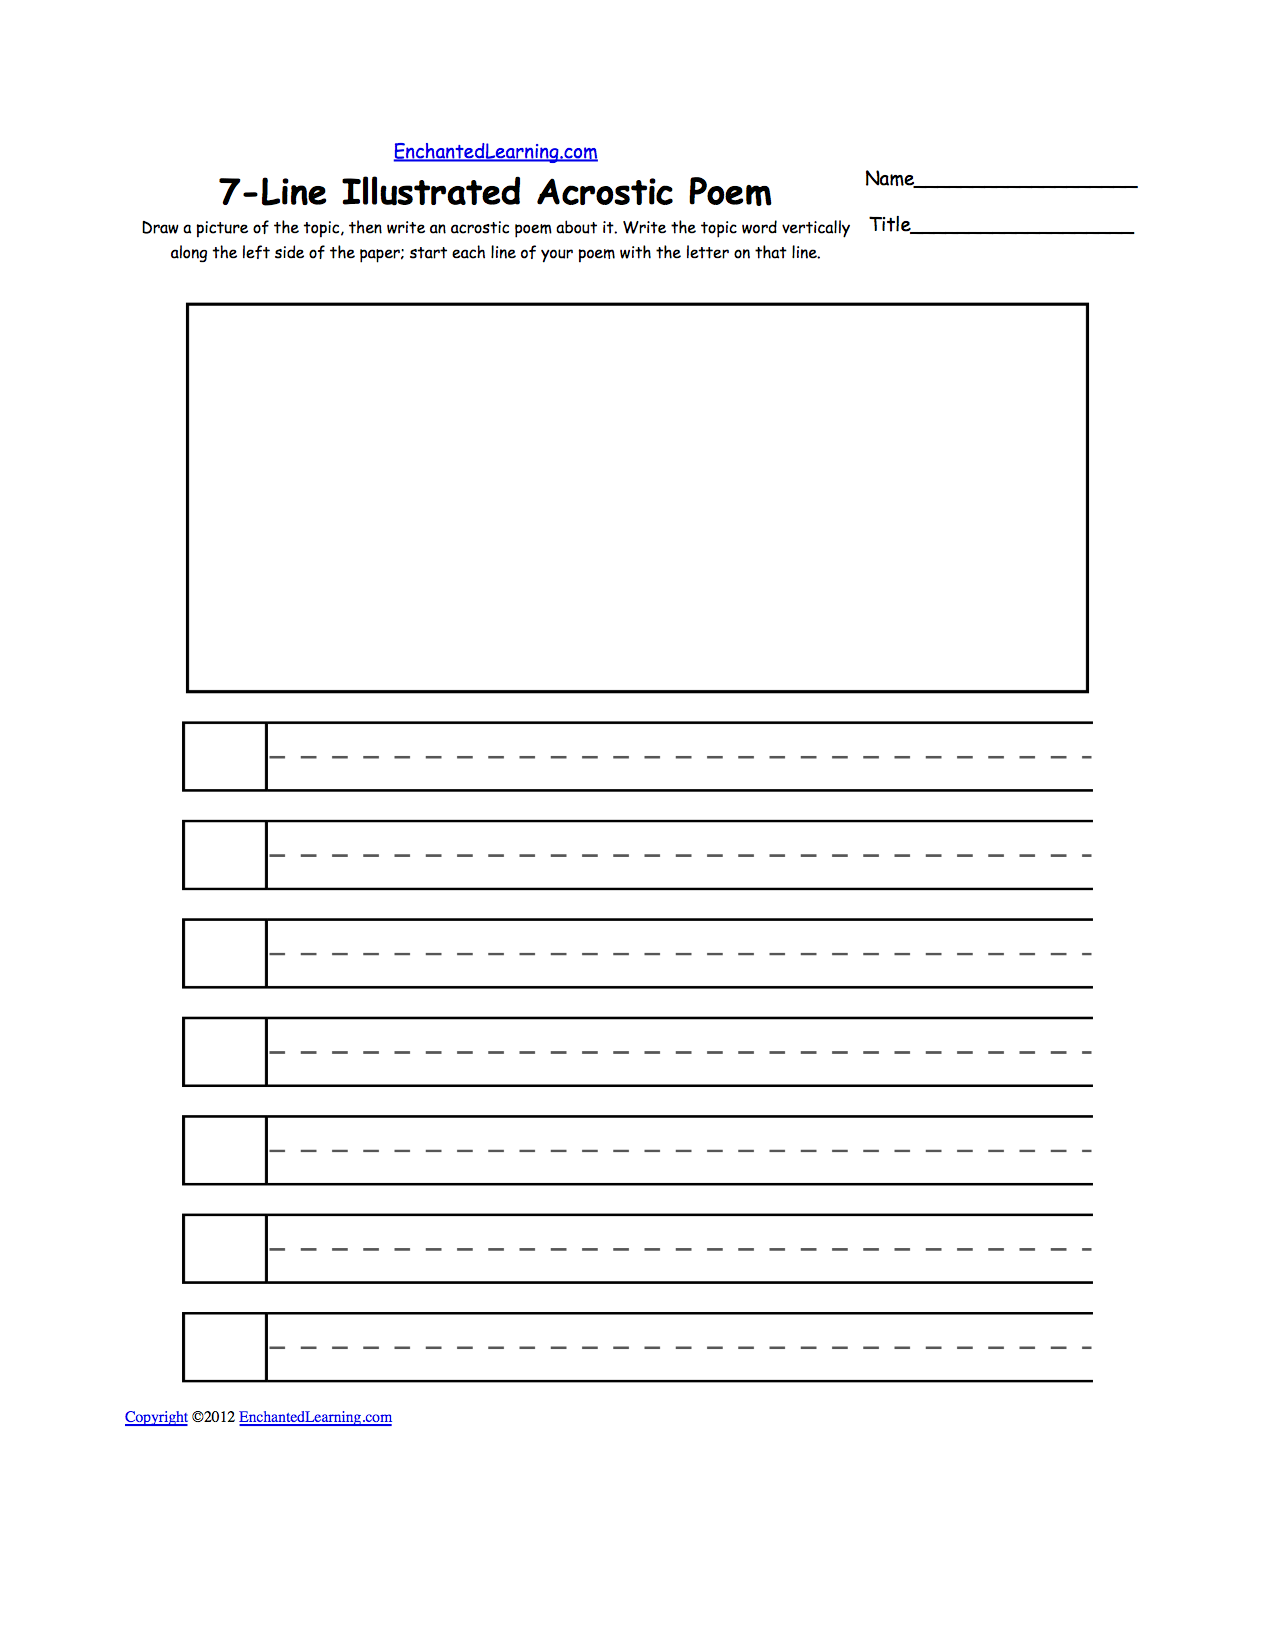 Blank Illustrated Acrostic Poem Worksheets Handwriting Lines – Respect Worksheets